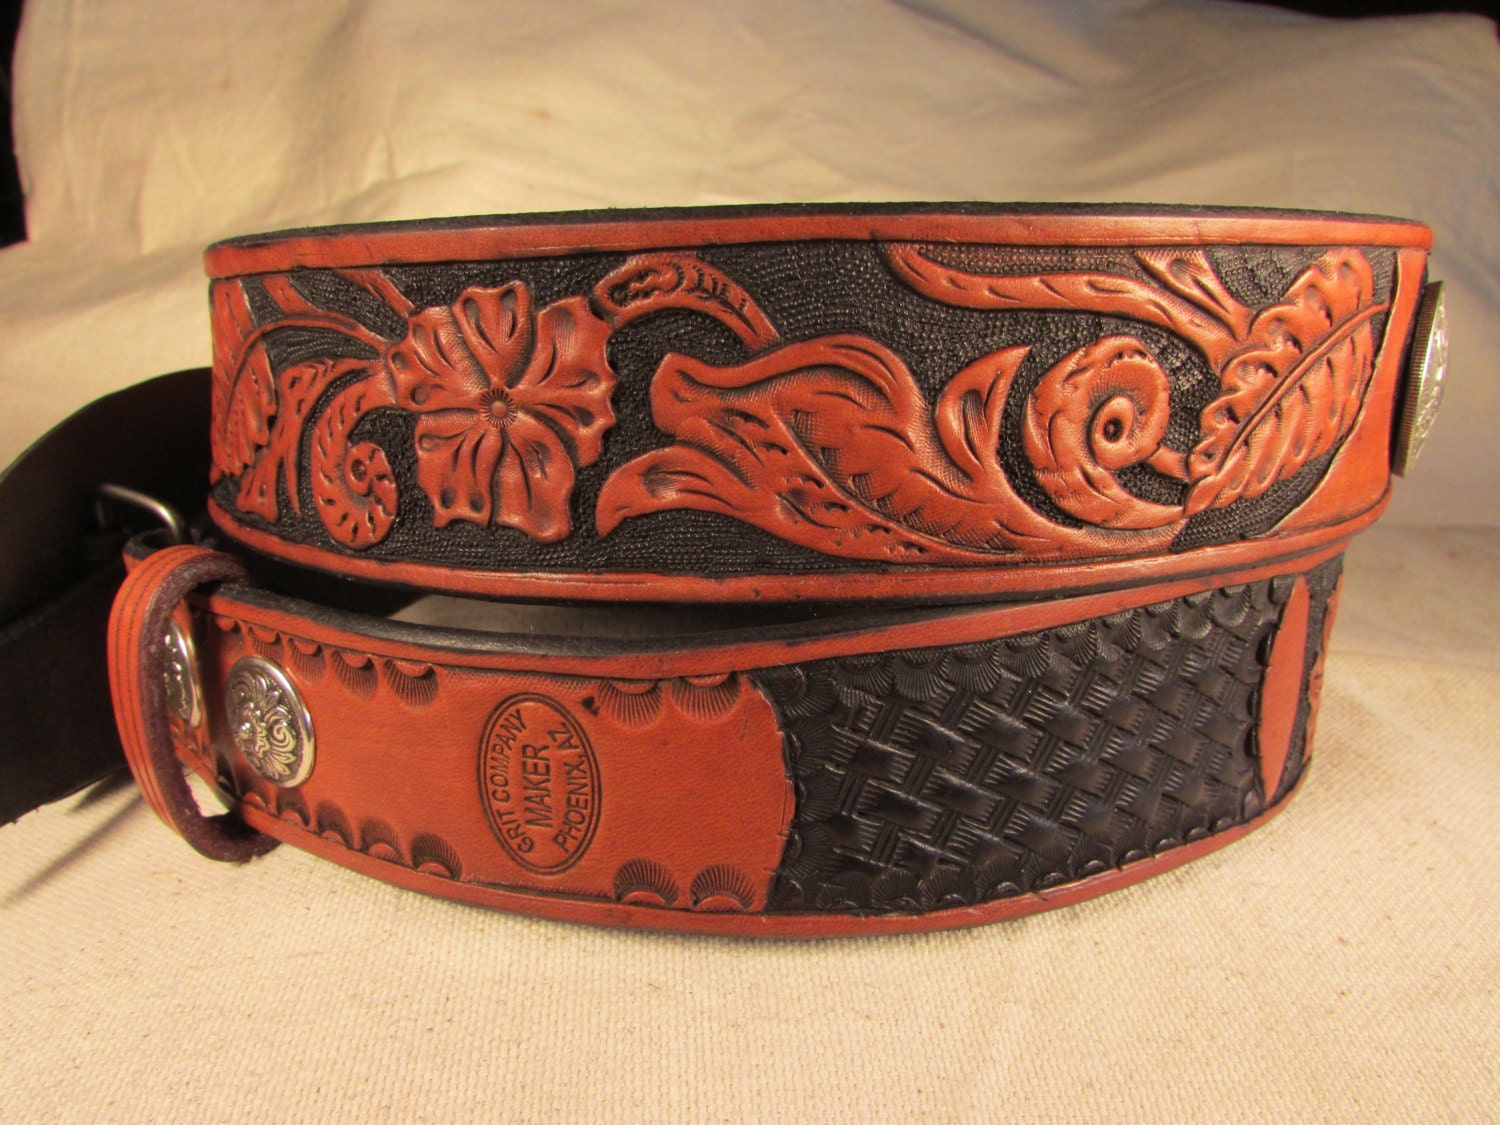 1 75 tooled leather belt with flower